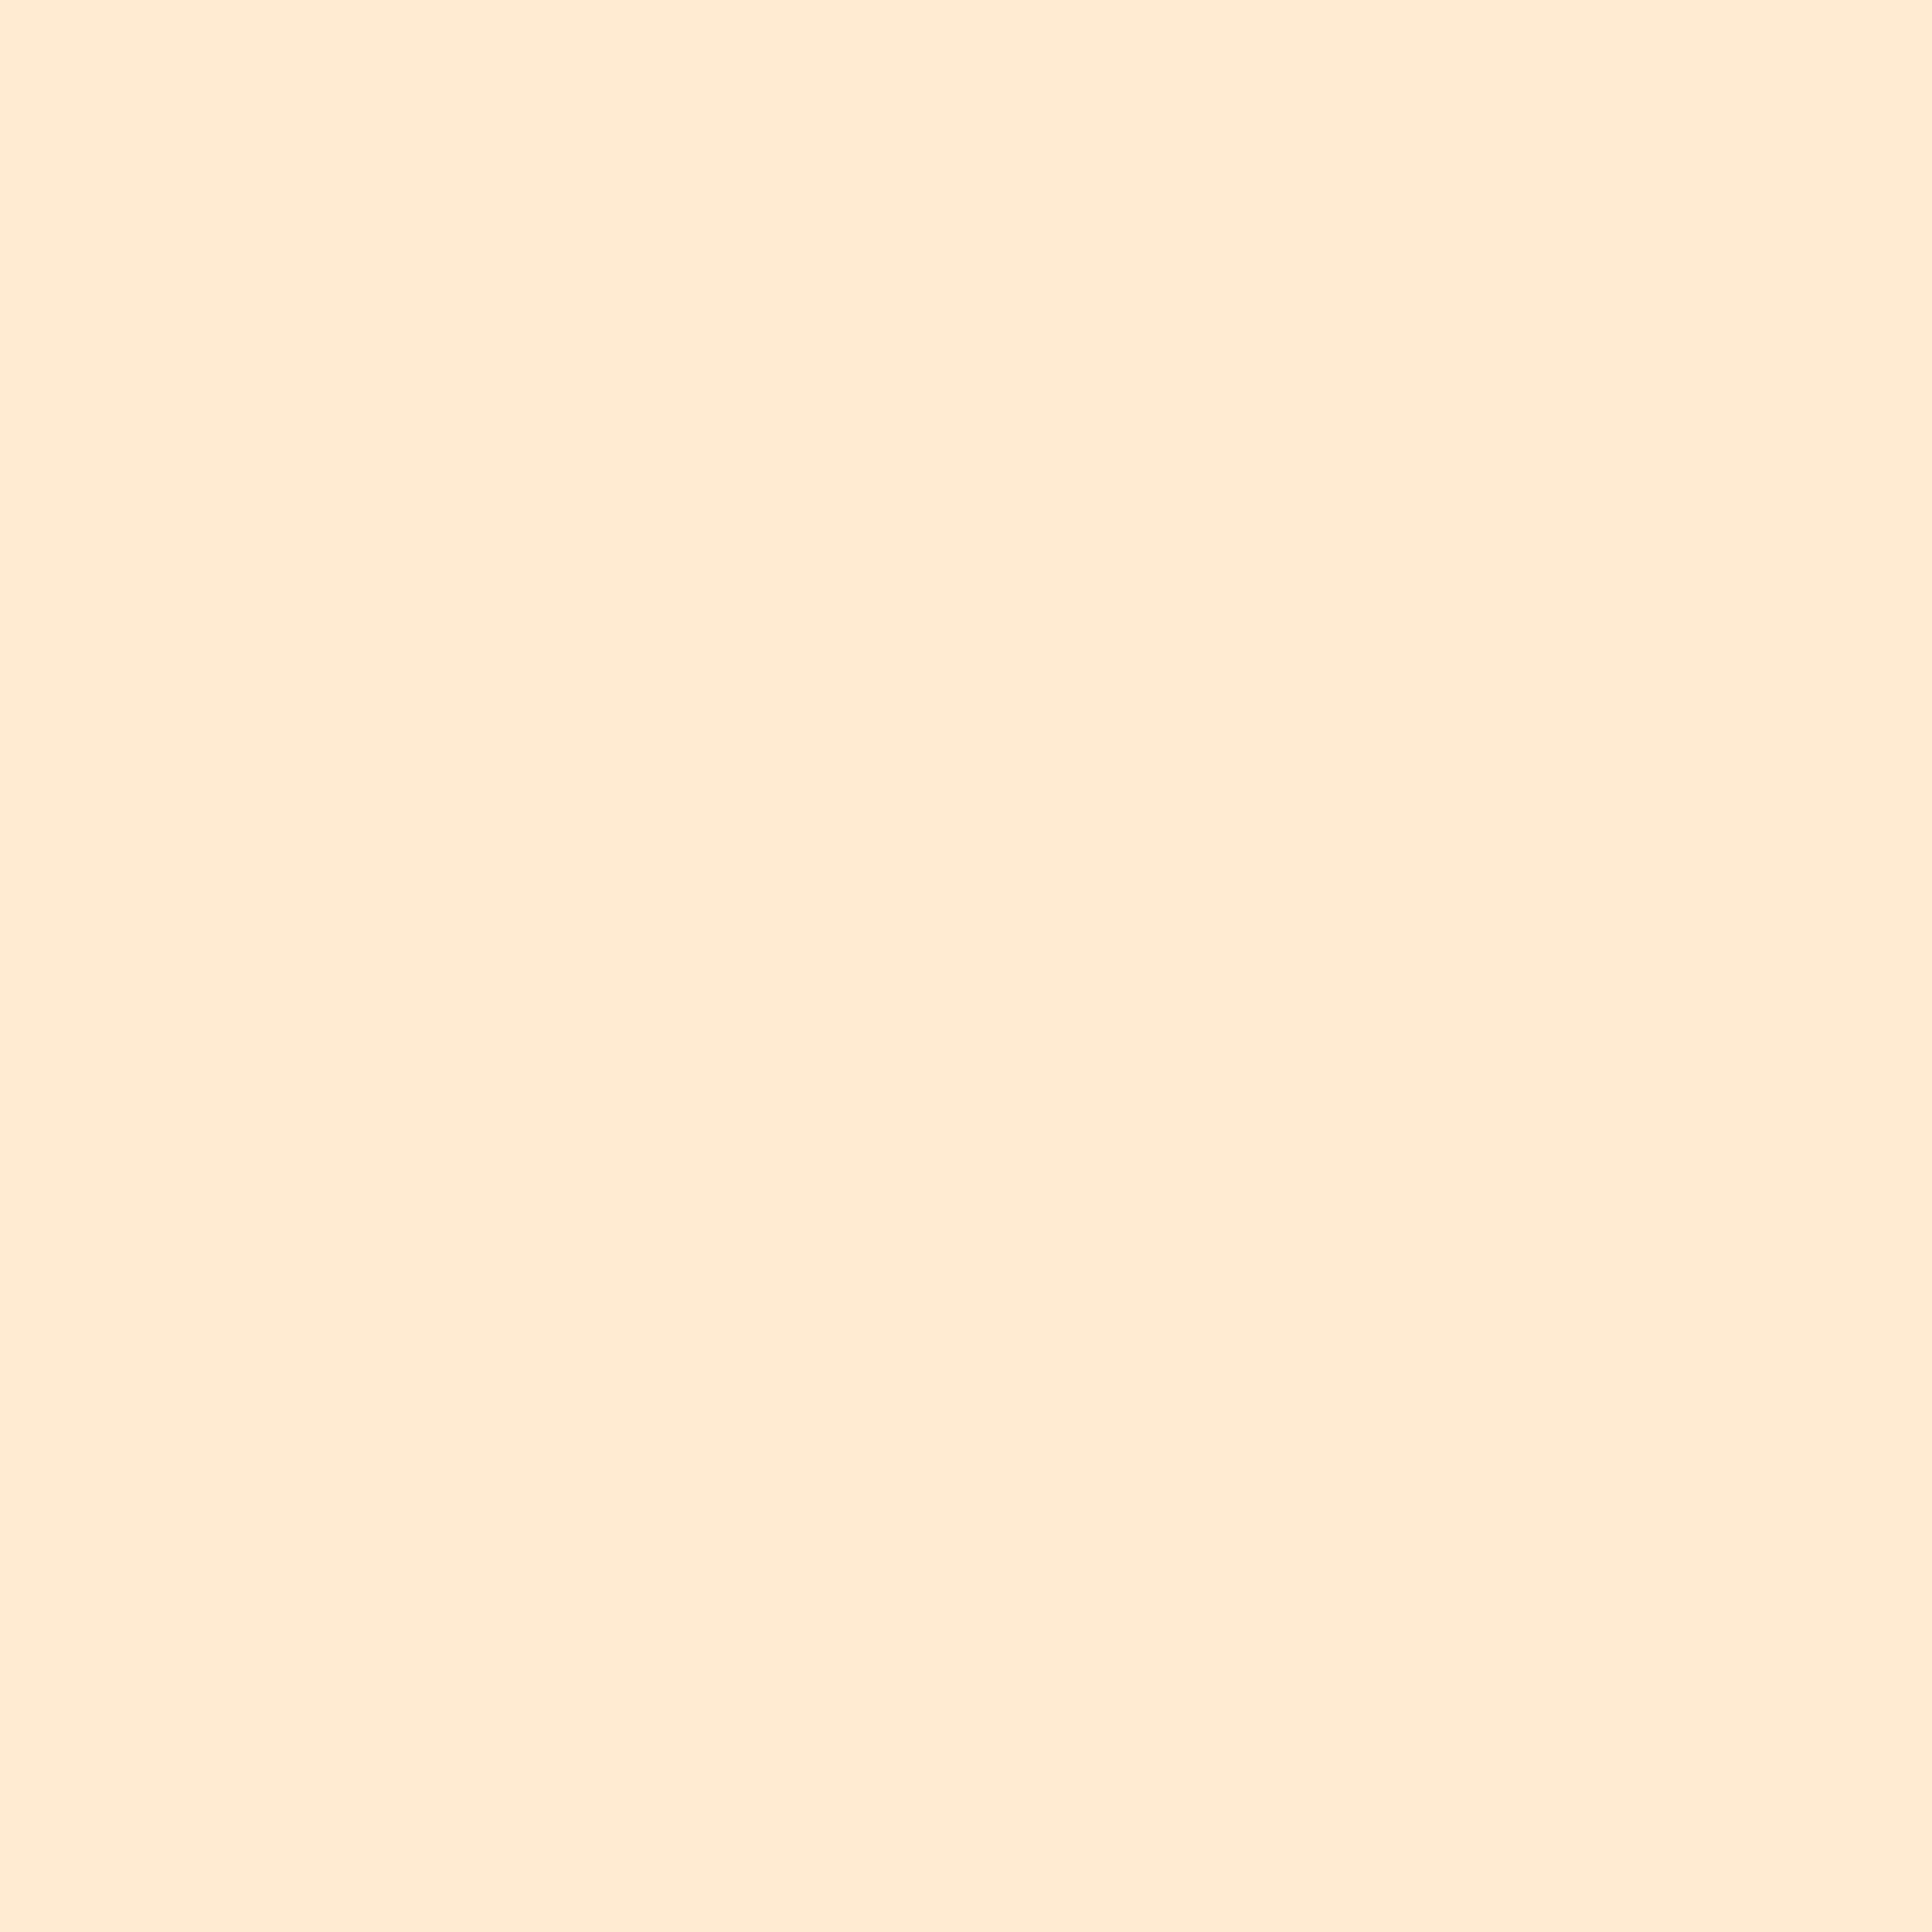 3600x3600 Blanched Almond Solid Color Background